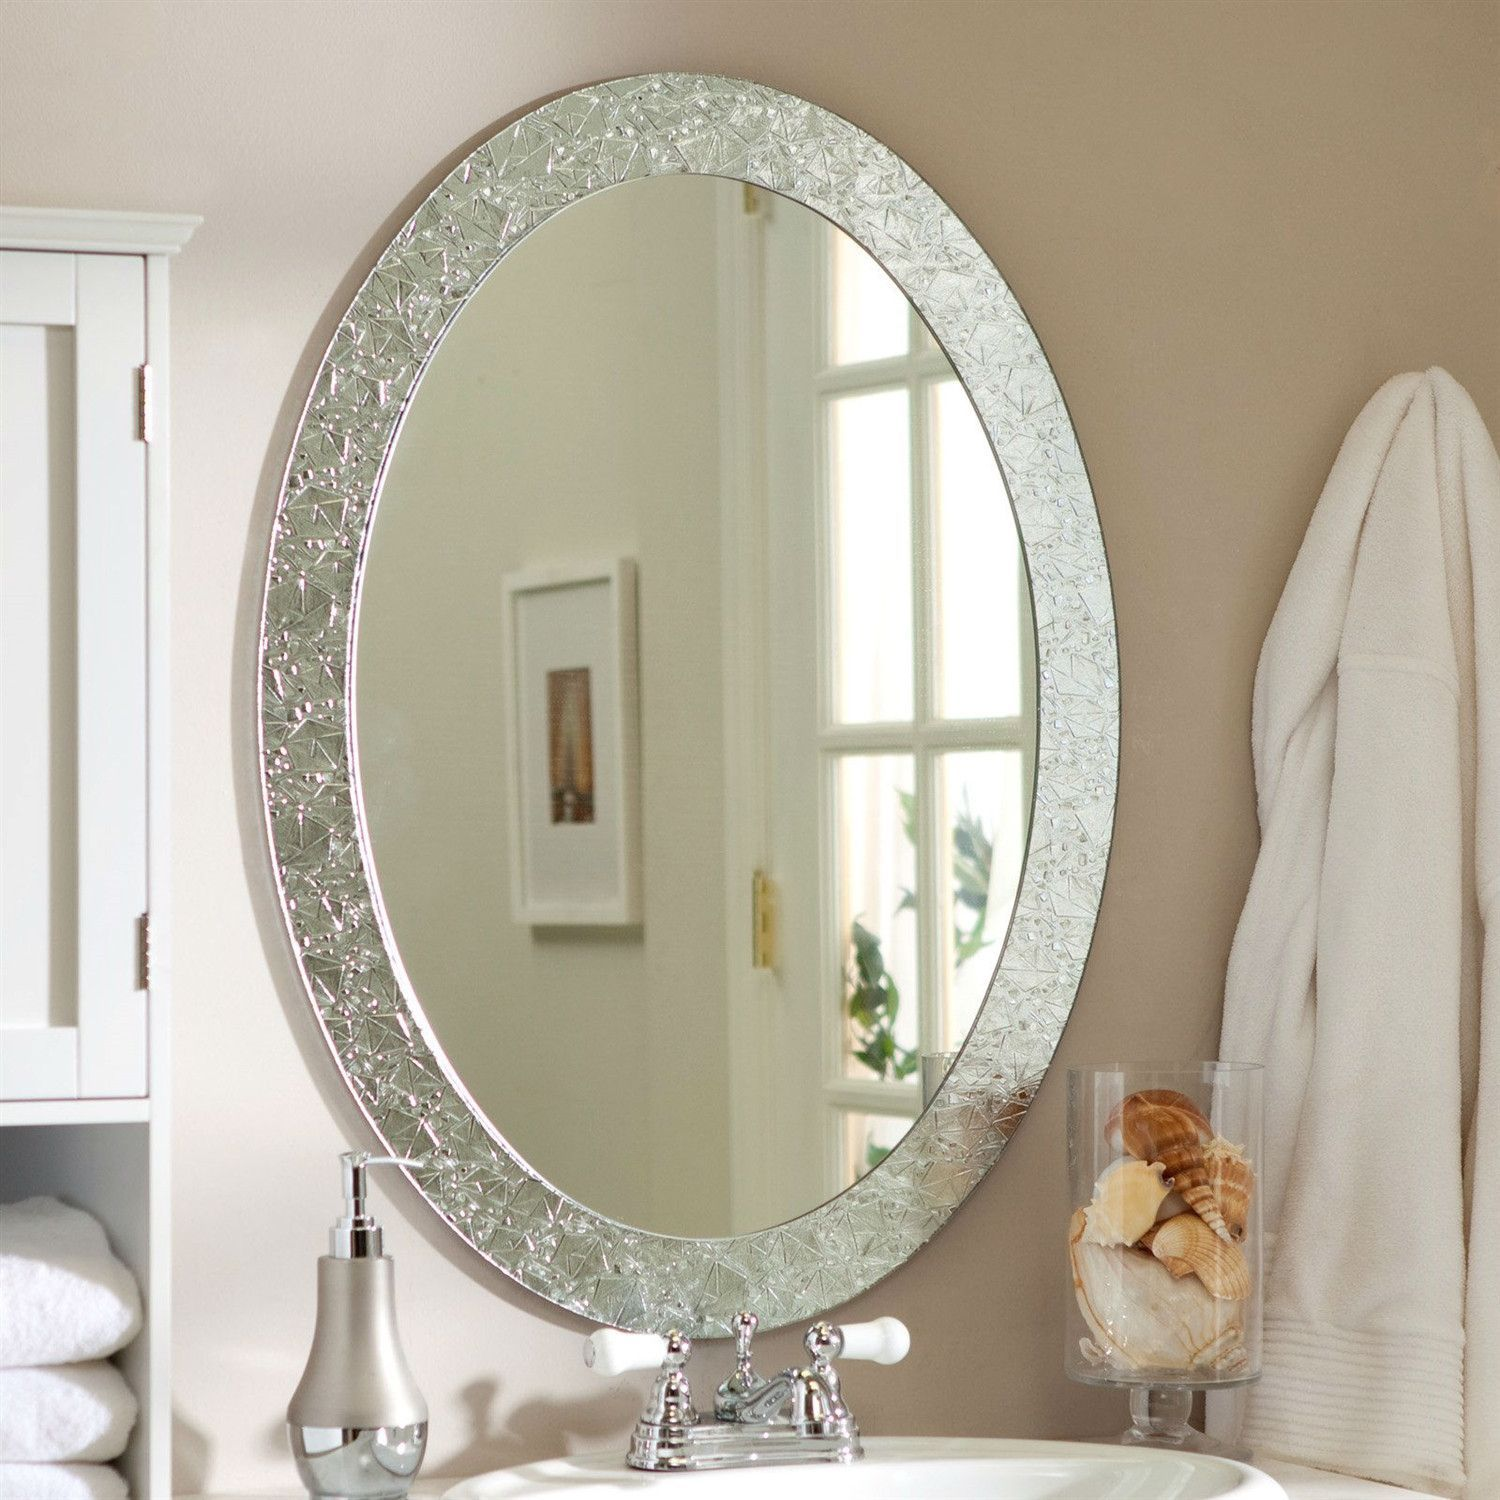 Oval Frame Less Bathroom Vanity Wall Mirror With Elegant Crystal Border Oval Frame And